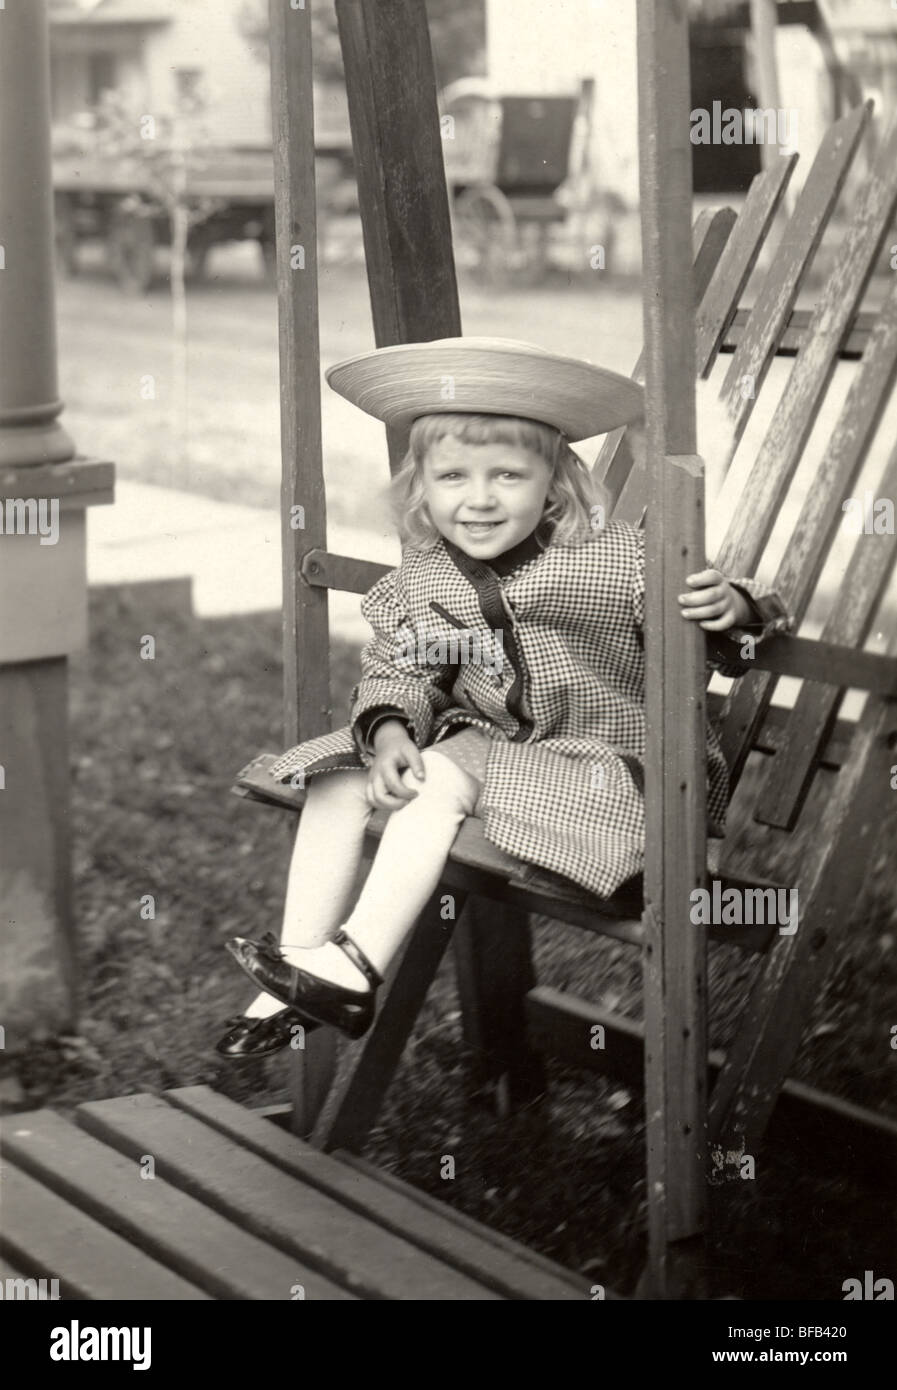 Little Girl in Round Hat Sitting on Swing Set - Stock Image